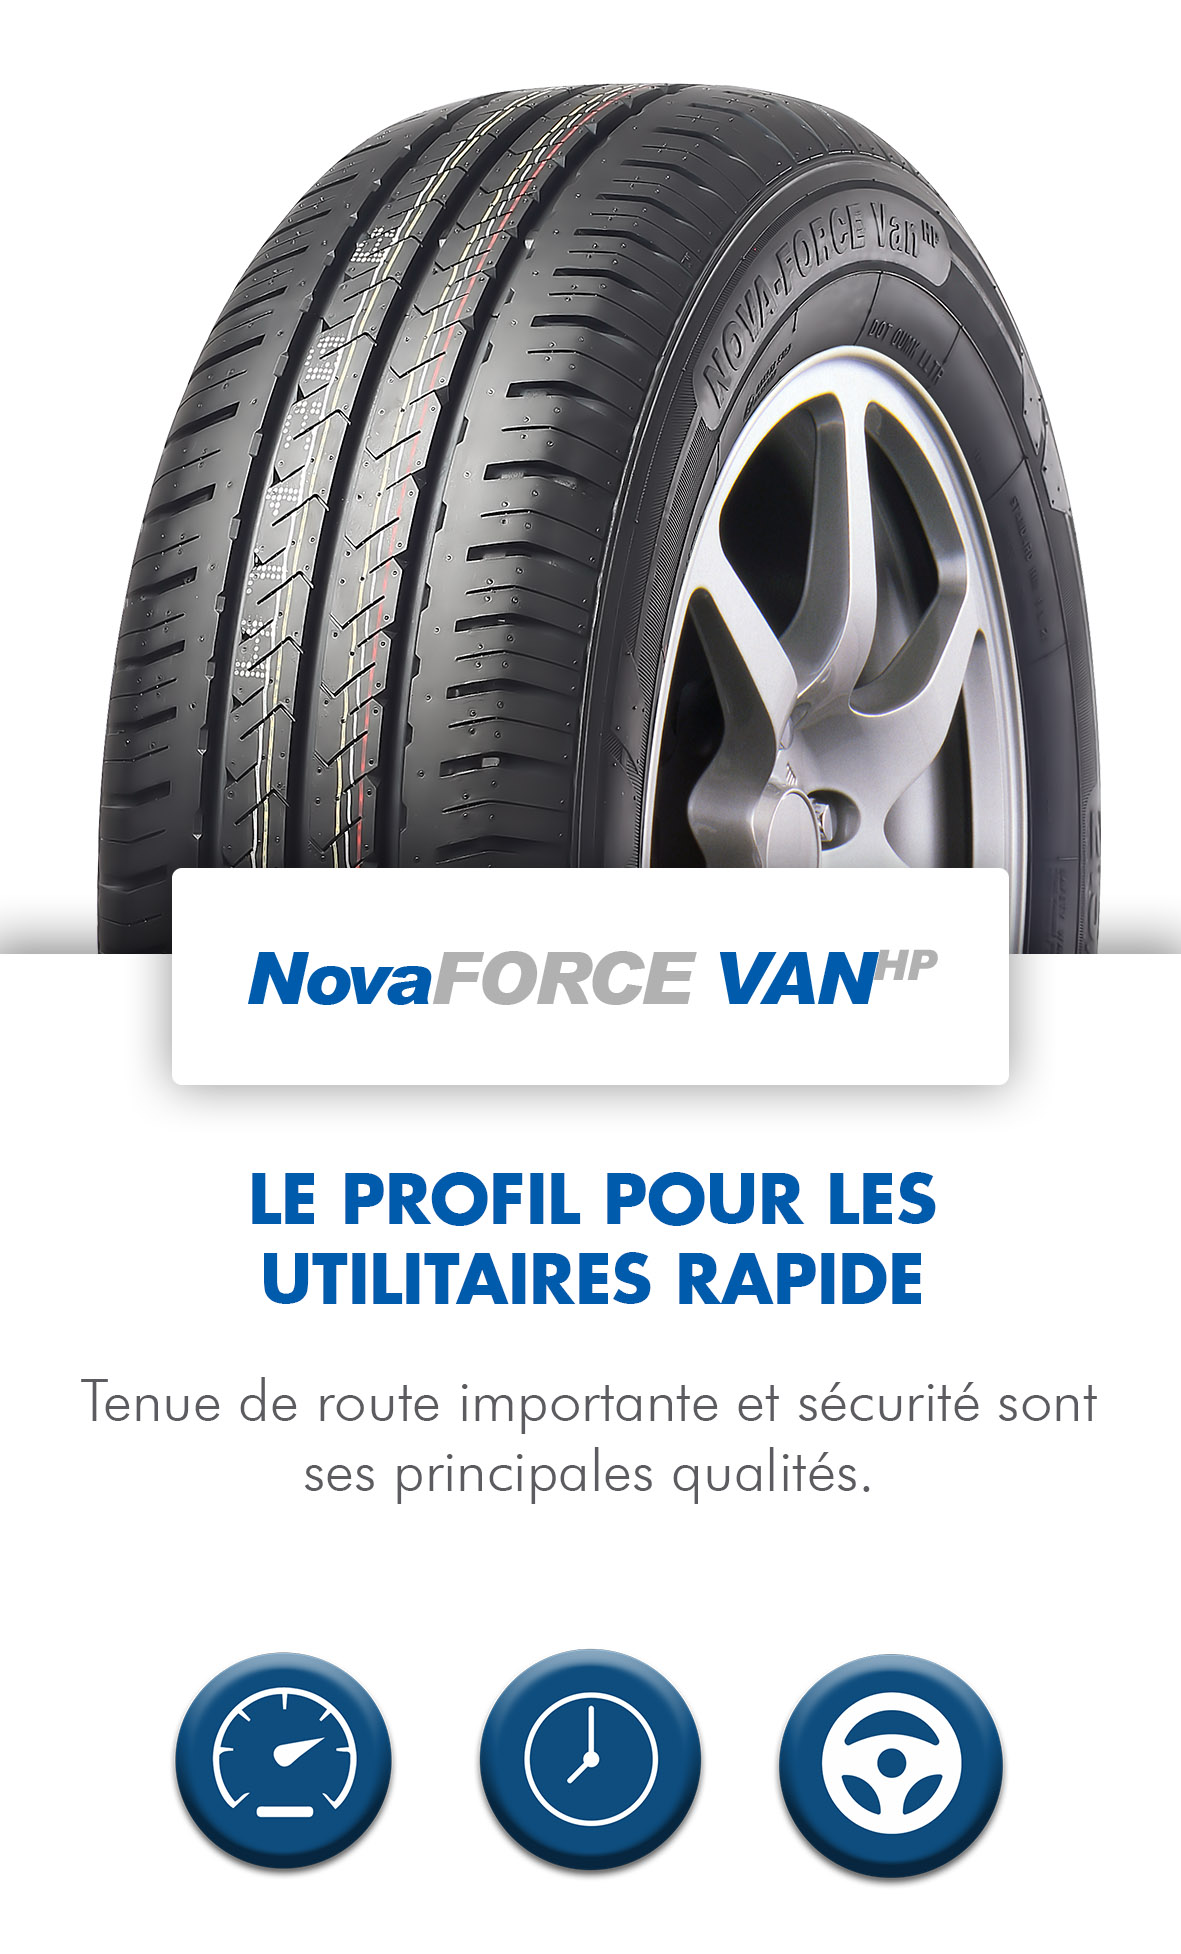 NovaForce4VANhp